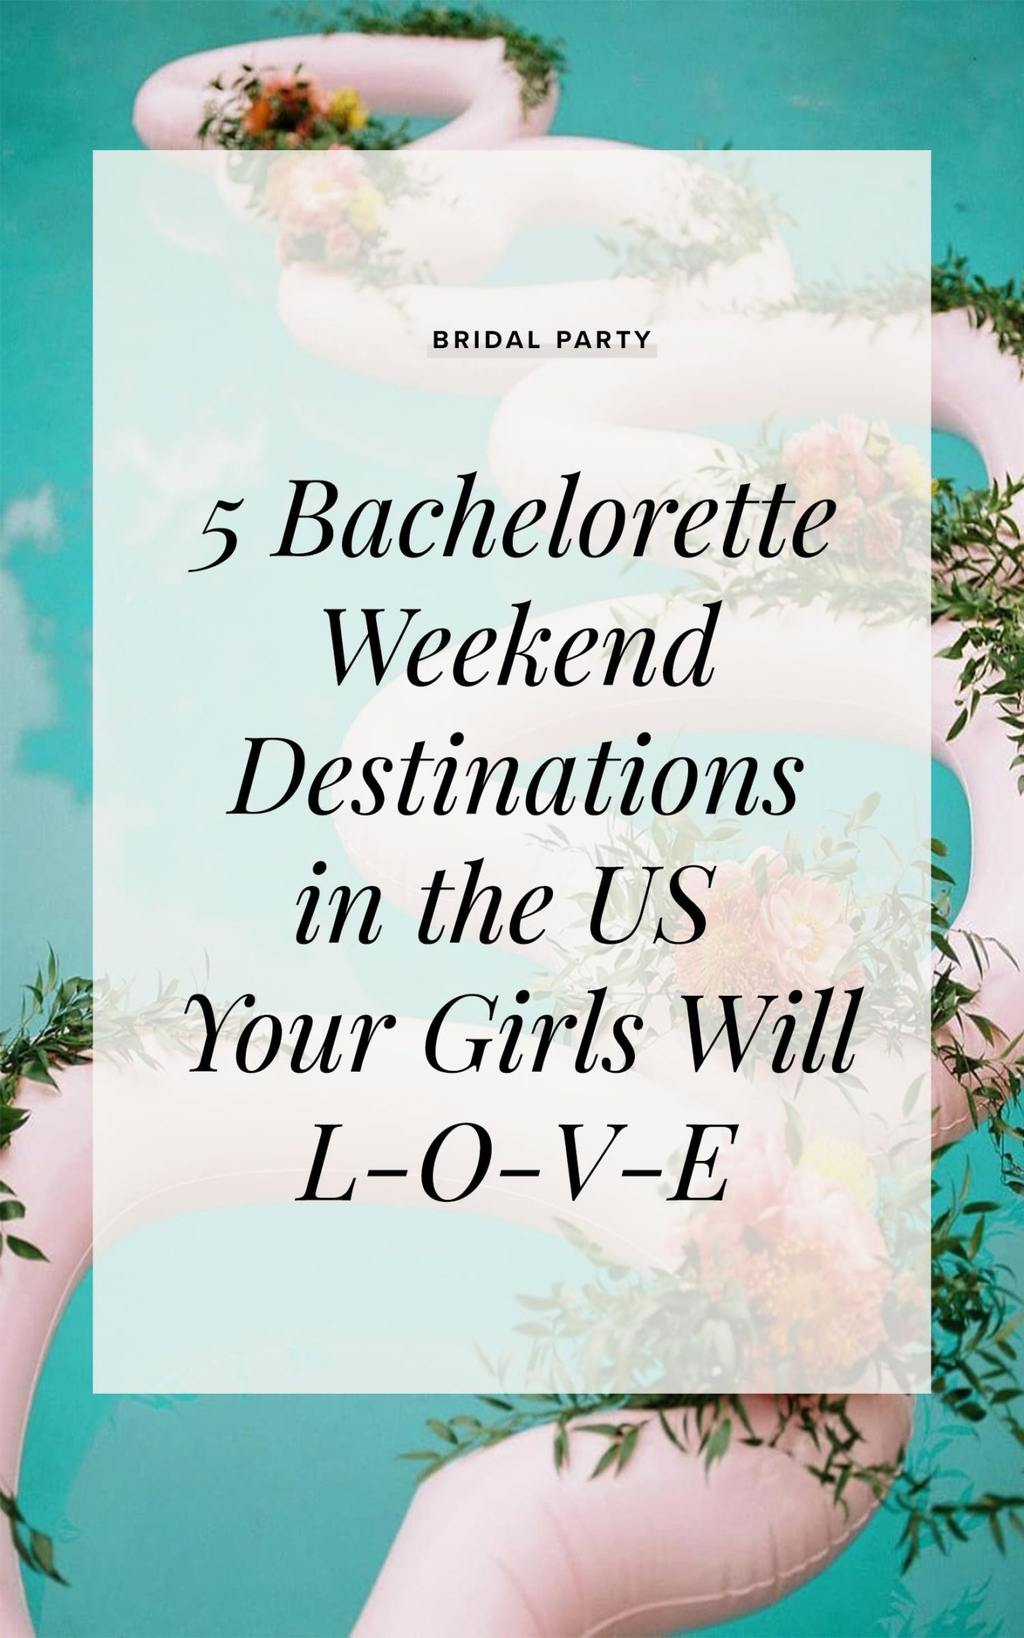 Bachelorette Weekend Destinations Postcover 1350x2160